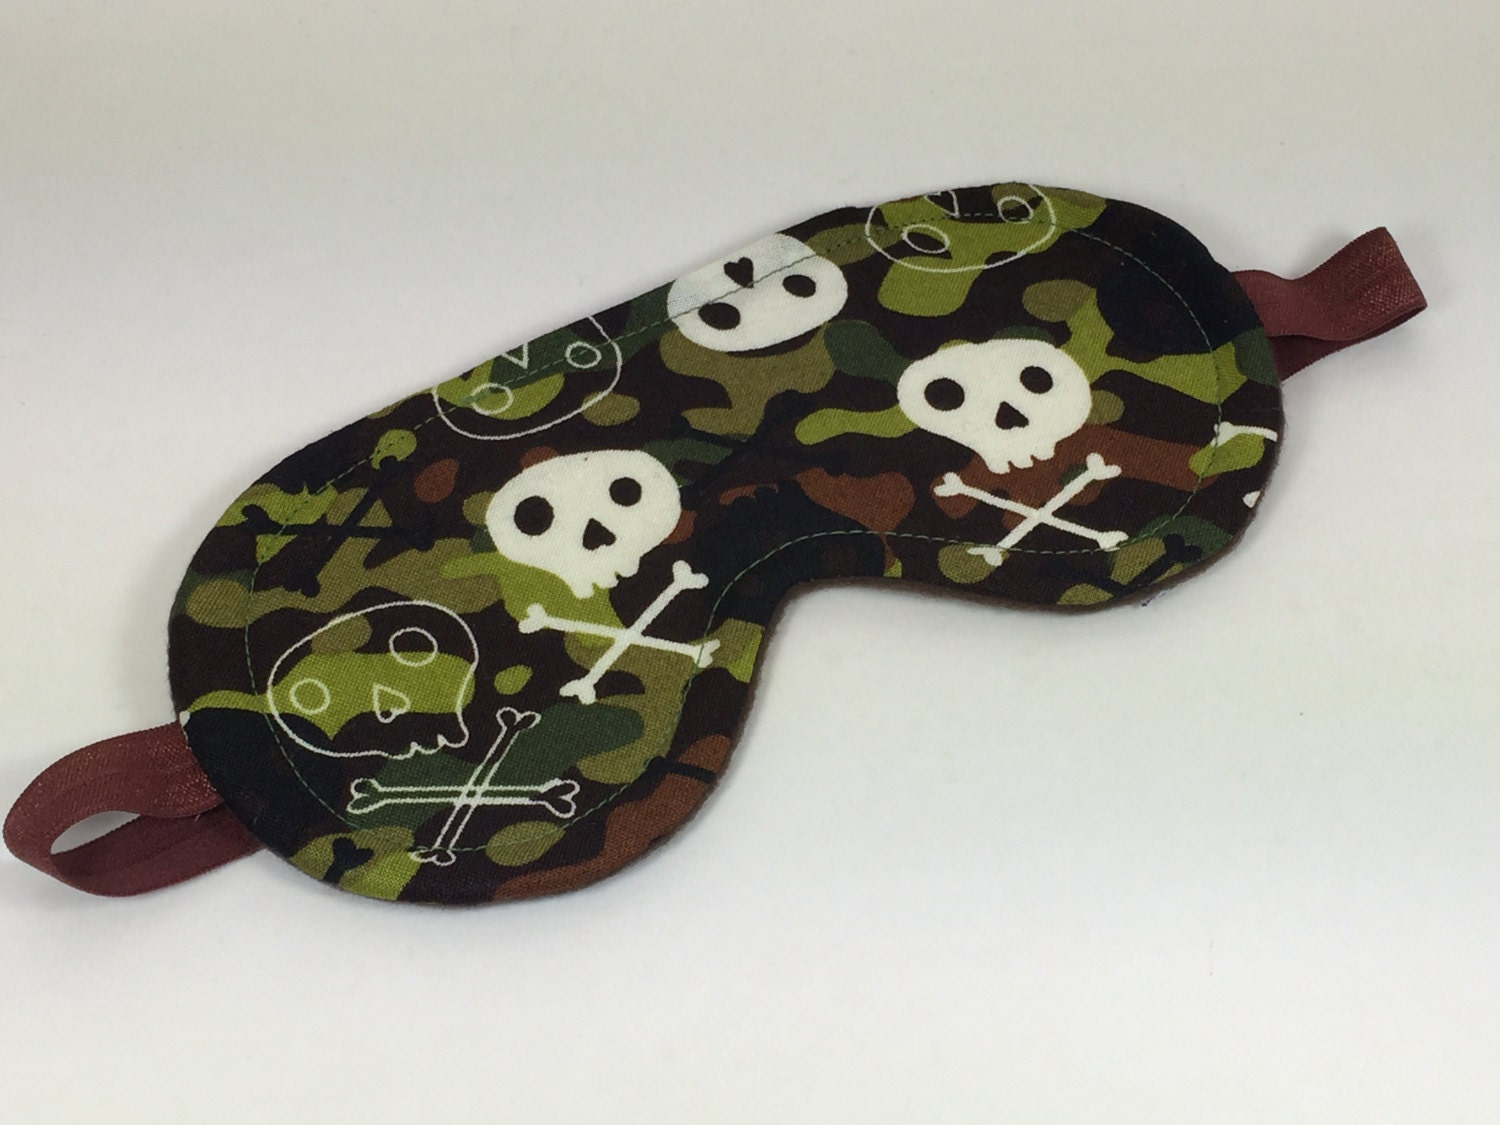 You searched for: men sleep mask! Etsy is the home to thousands of handmade, vintage, and one-of-a-kind products and gifts related to your search. No matter what you're looking for or where you are in the world, our global marketplace of sellers can help you find unique and affordable options. Let's get started!